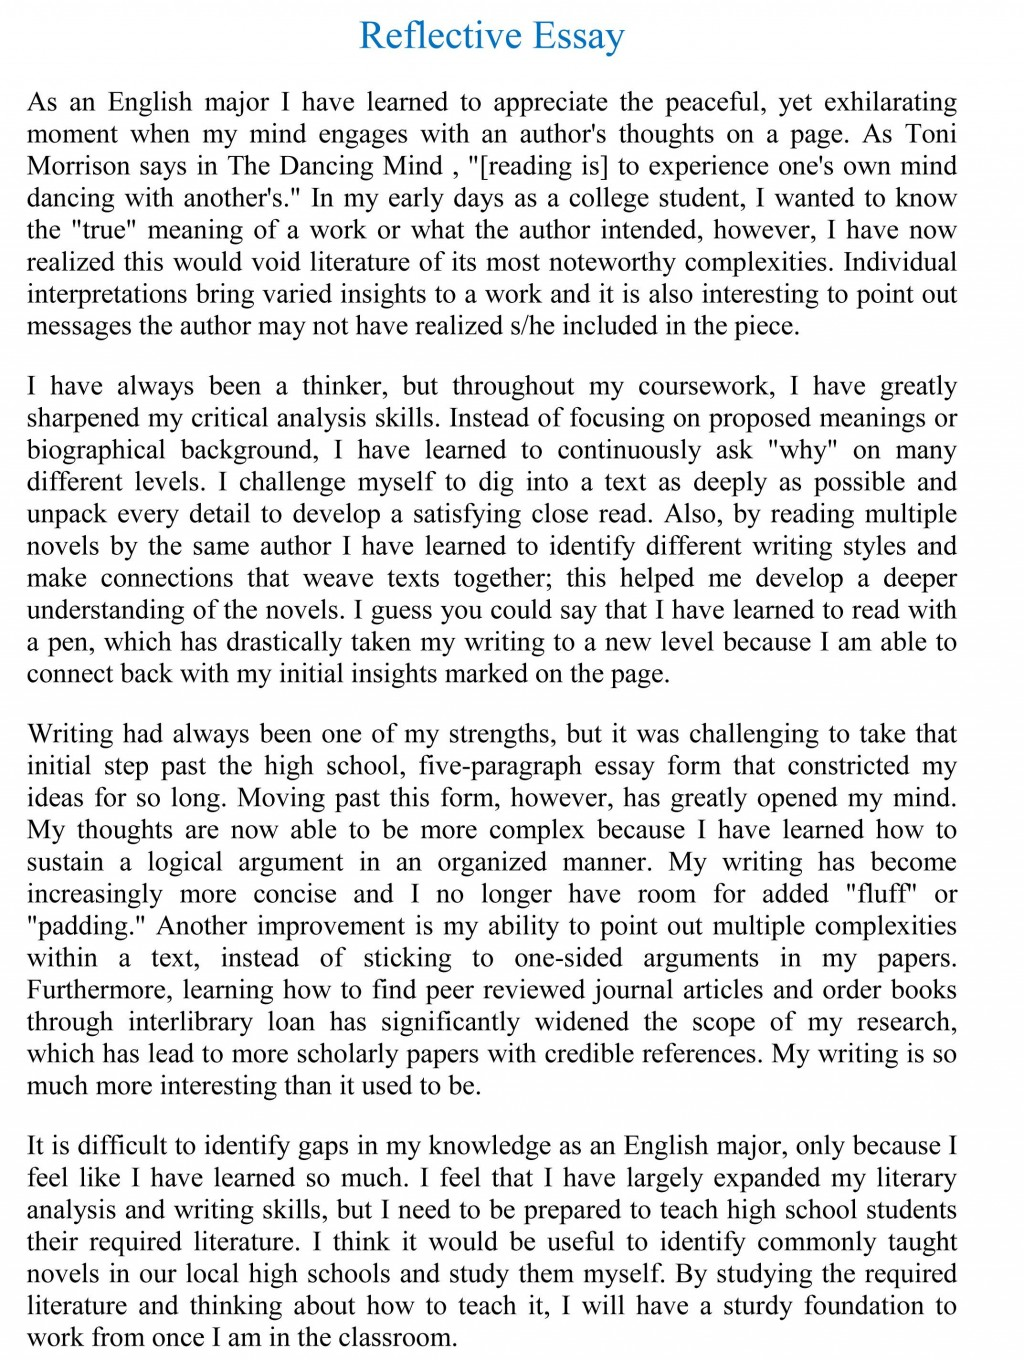 003 Reflection Essay Example Astounding Reflective Examples High School Students About Life Large